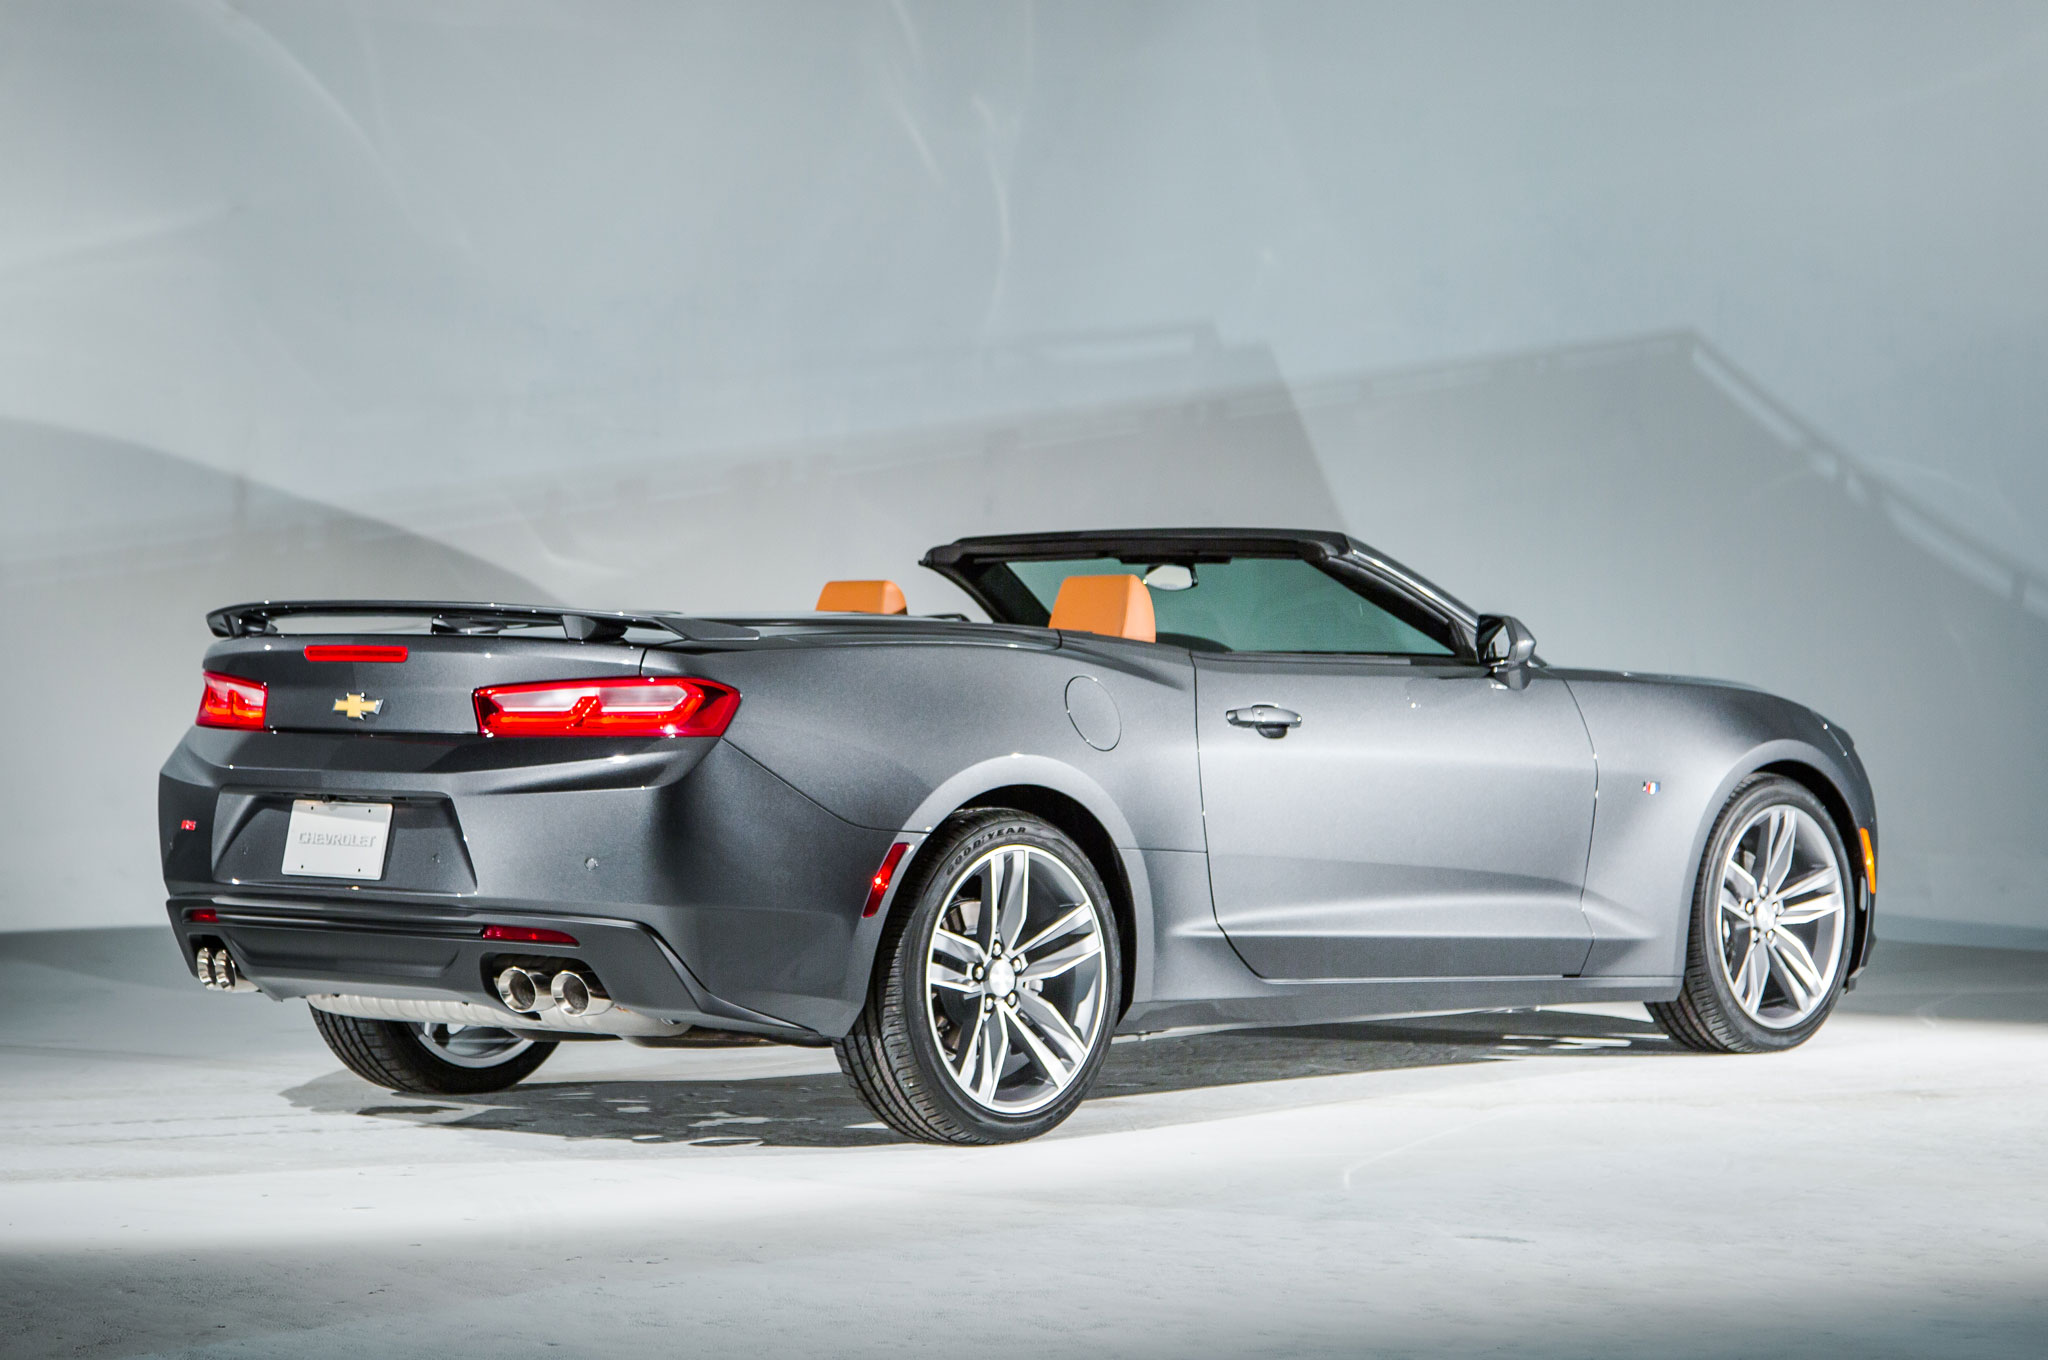 2016 Chevrolet Camaro Convertible Rear Three Quarter